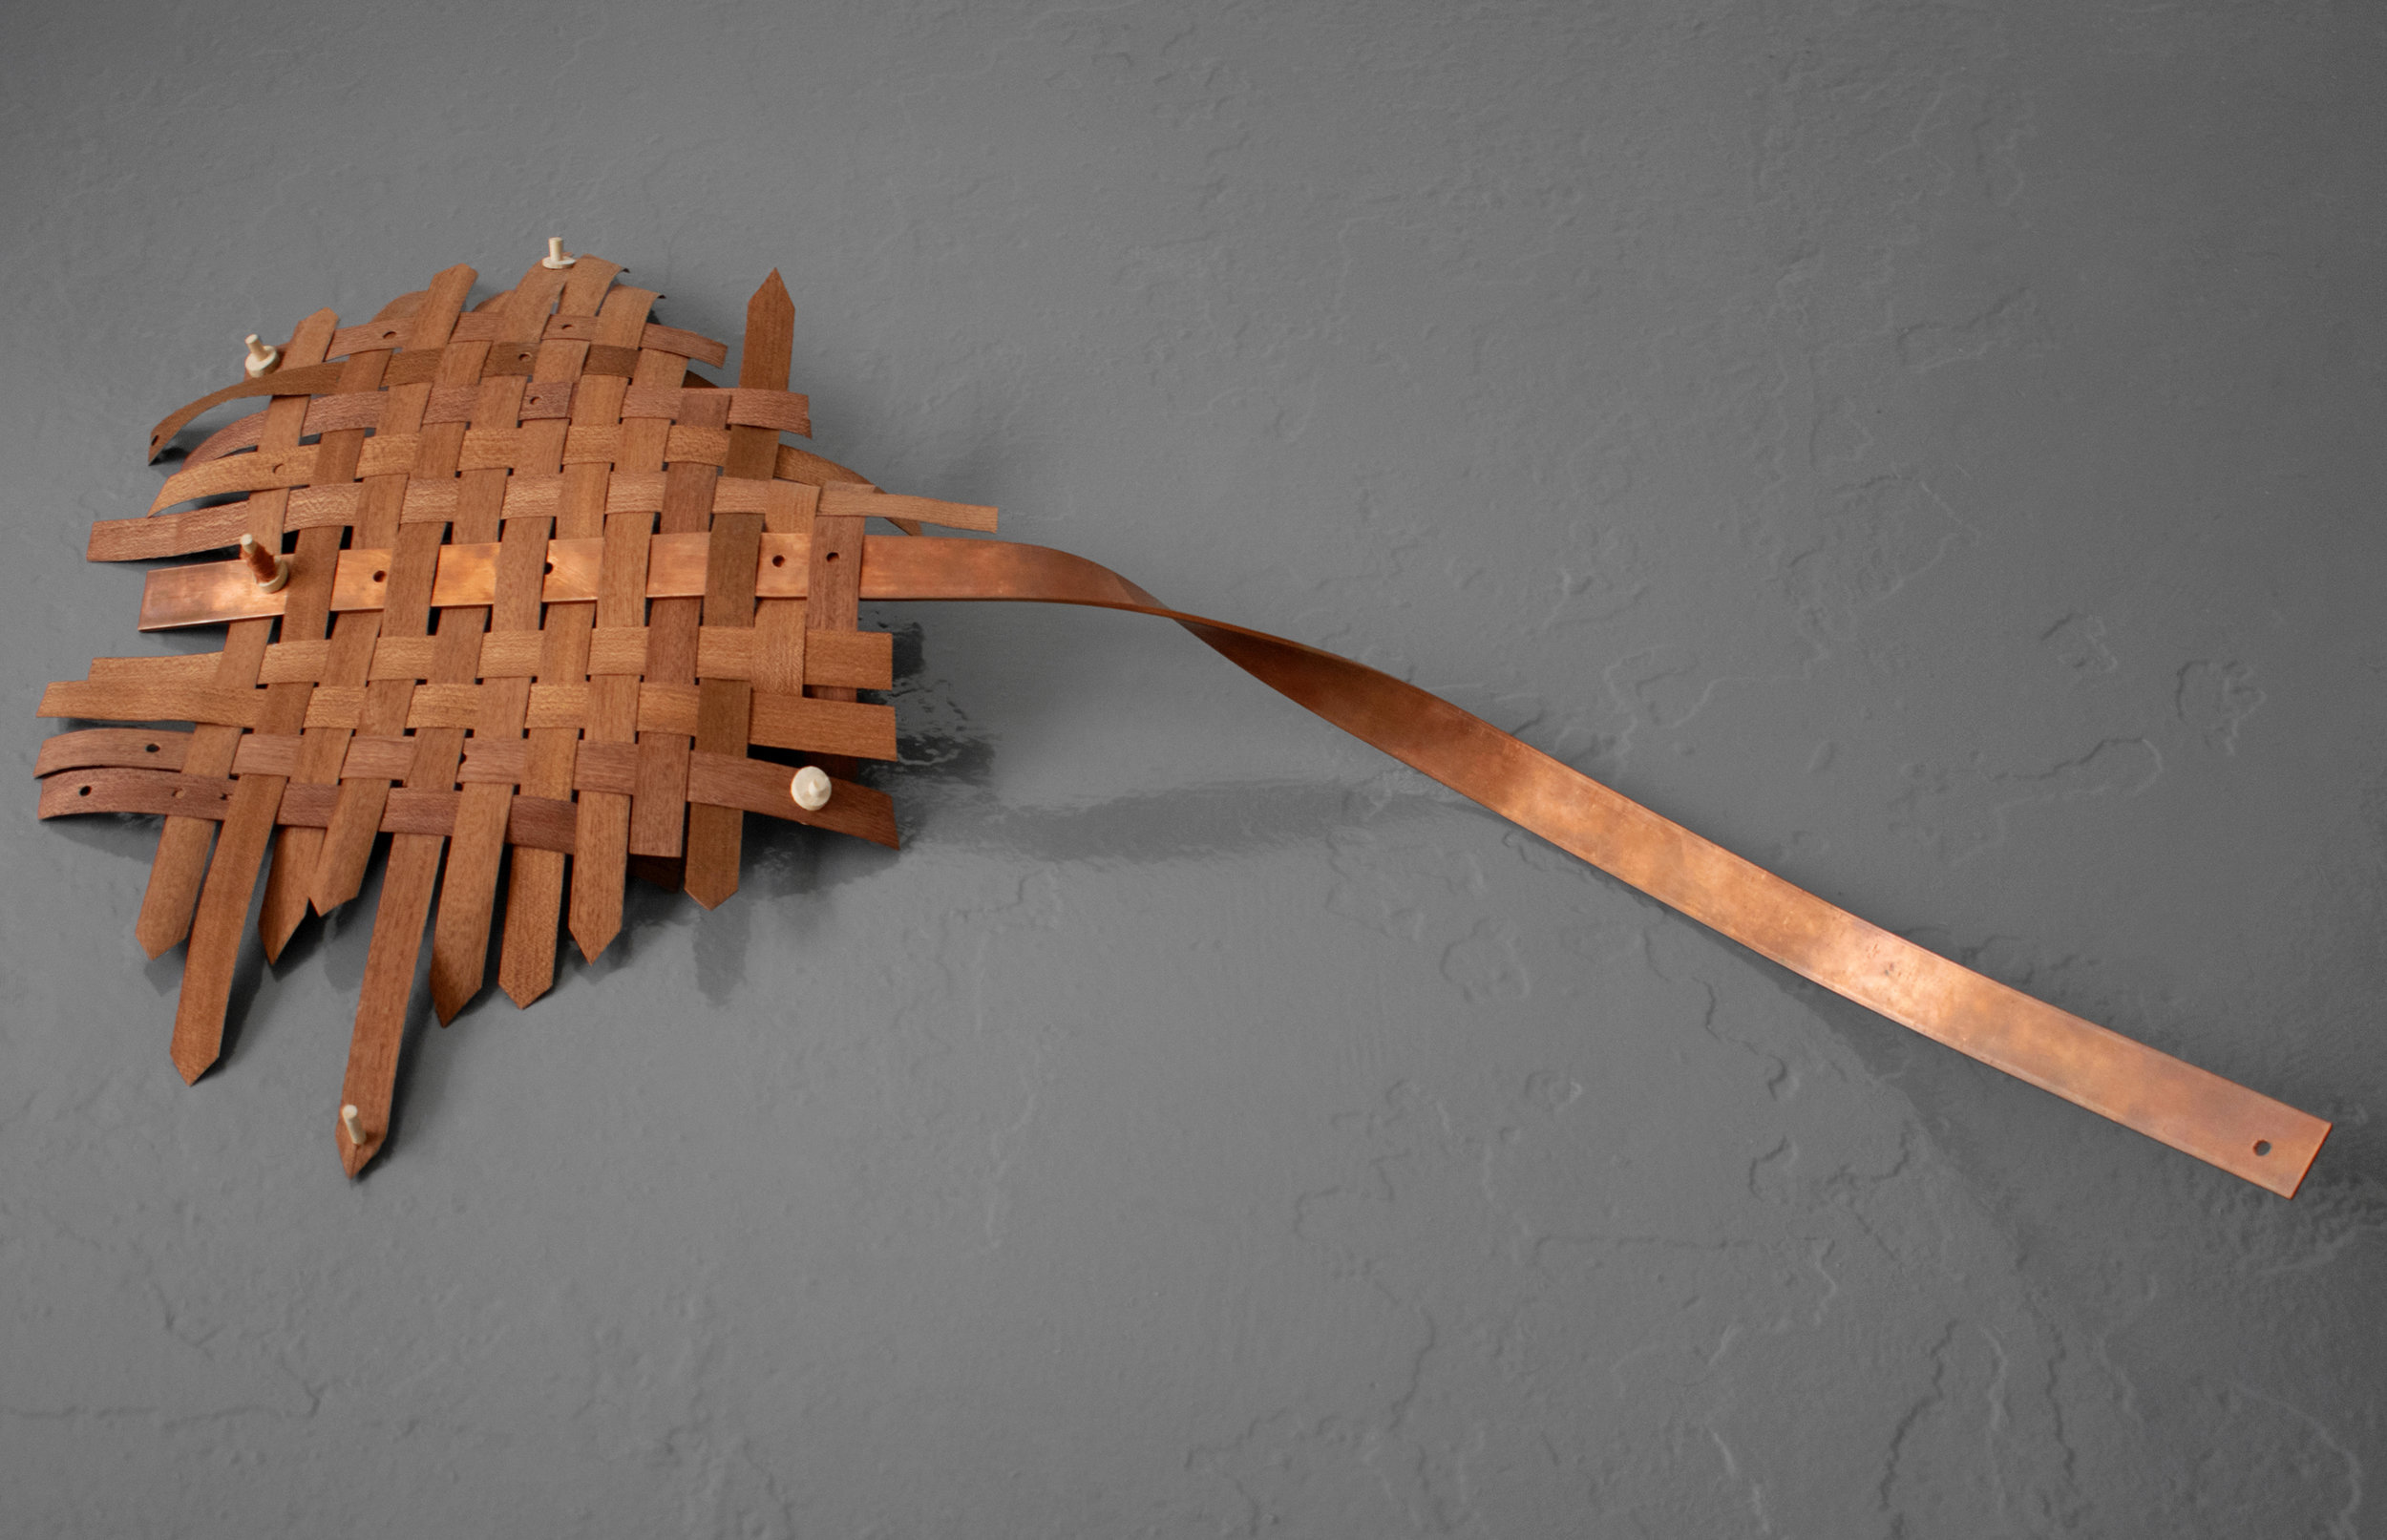 Blow to me, The Air I breathe  Weaved Sapele veneer, bent copper, wooden clamps. 35 x 60 cm. 2019